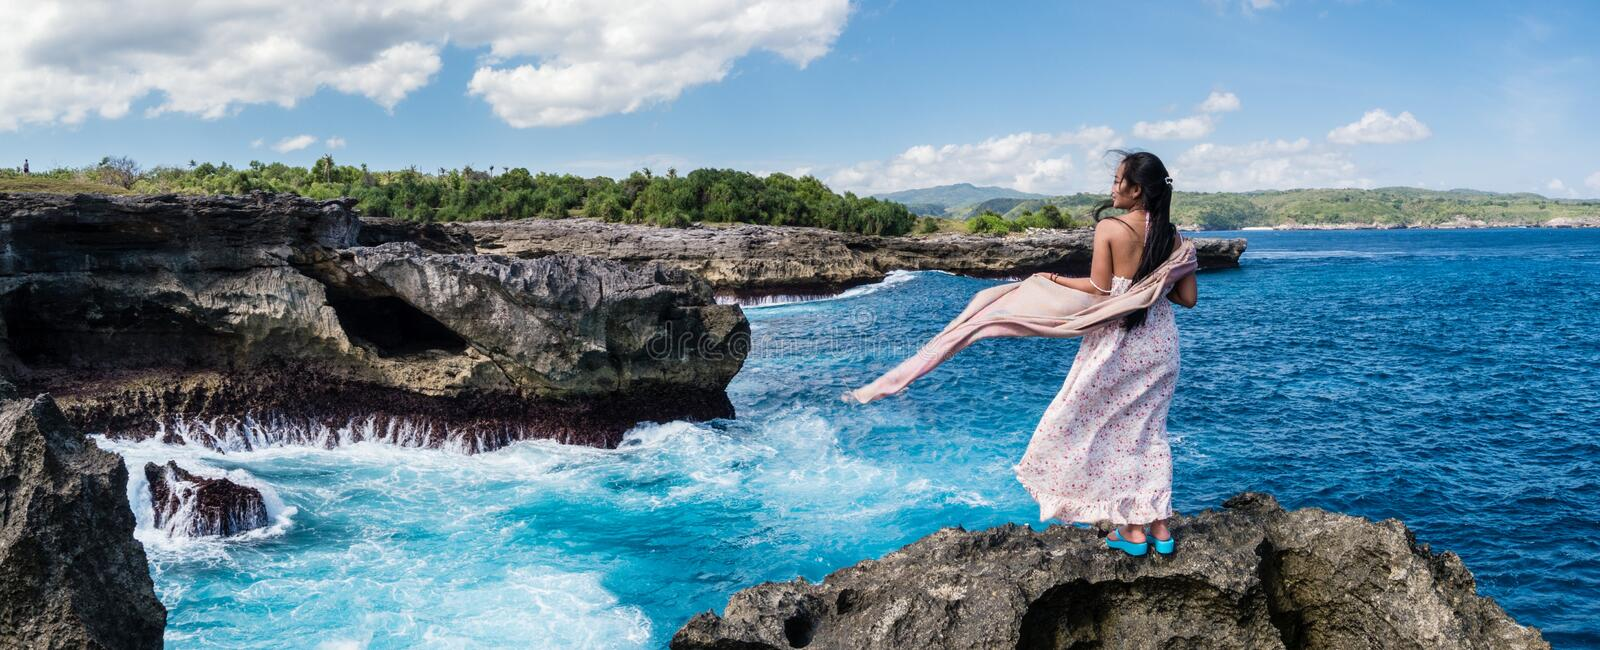 Photography of Woman Standing on Rock in Front of Sea stock image